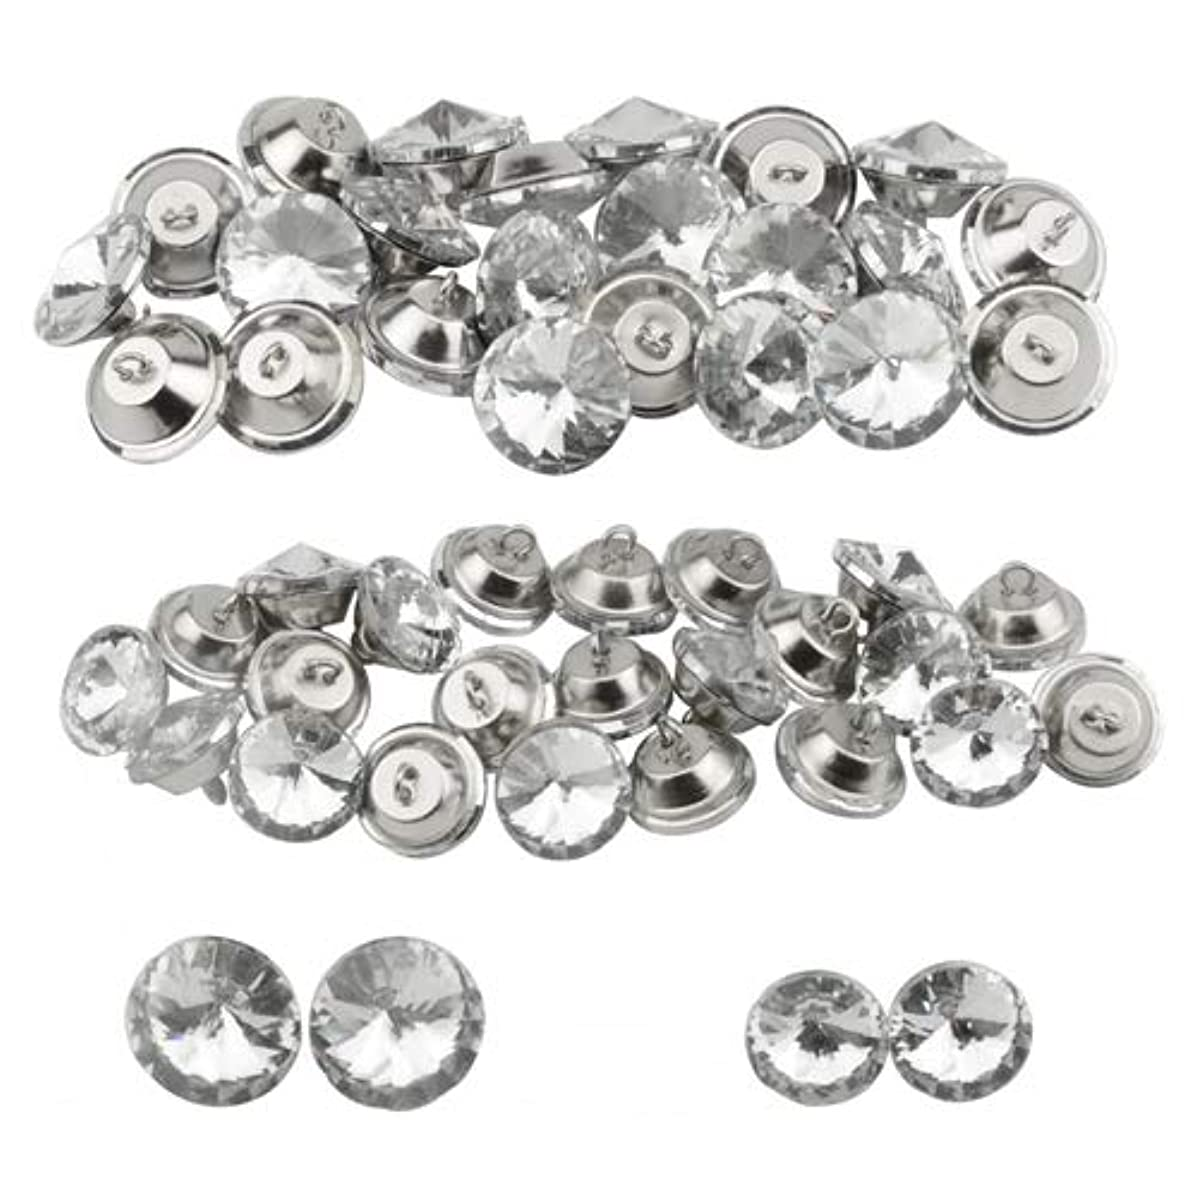 XLX 50PCS 2 Values Crystal Glass Diamond Shape Decorated Stainless Steel Modern Single Hole Round Button with Metal Loop for Crafts Furniture Headboard Clothing